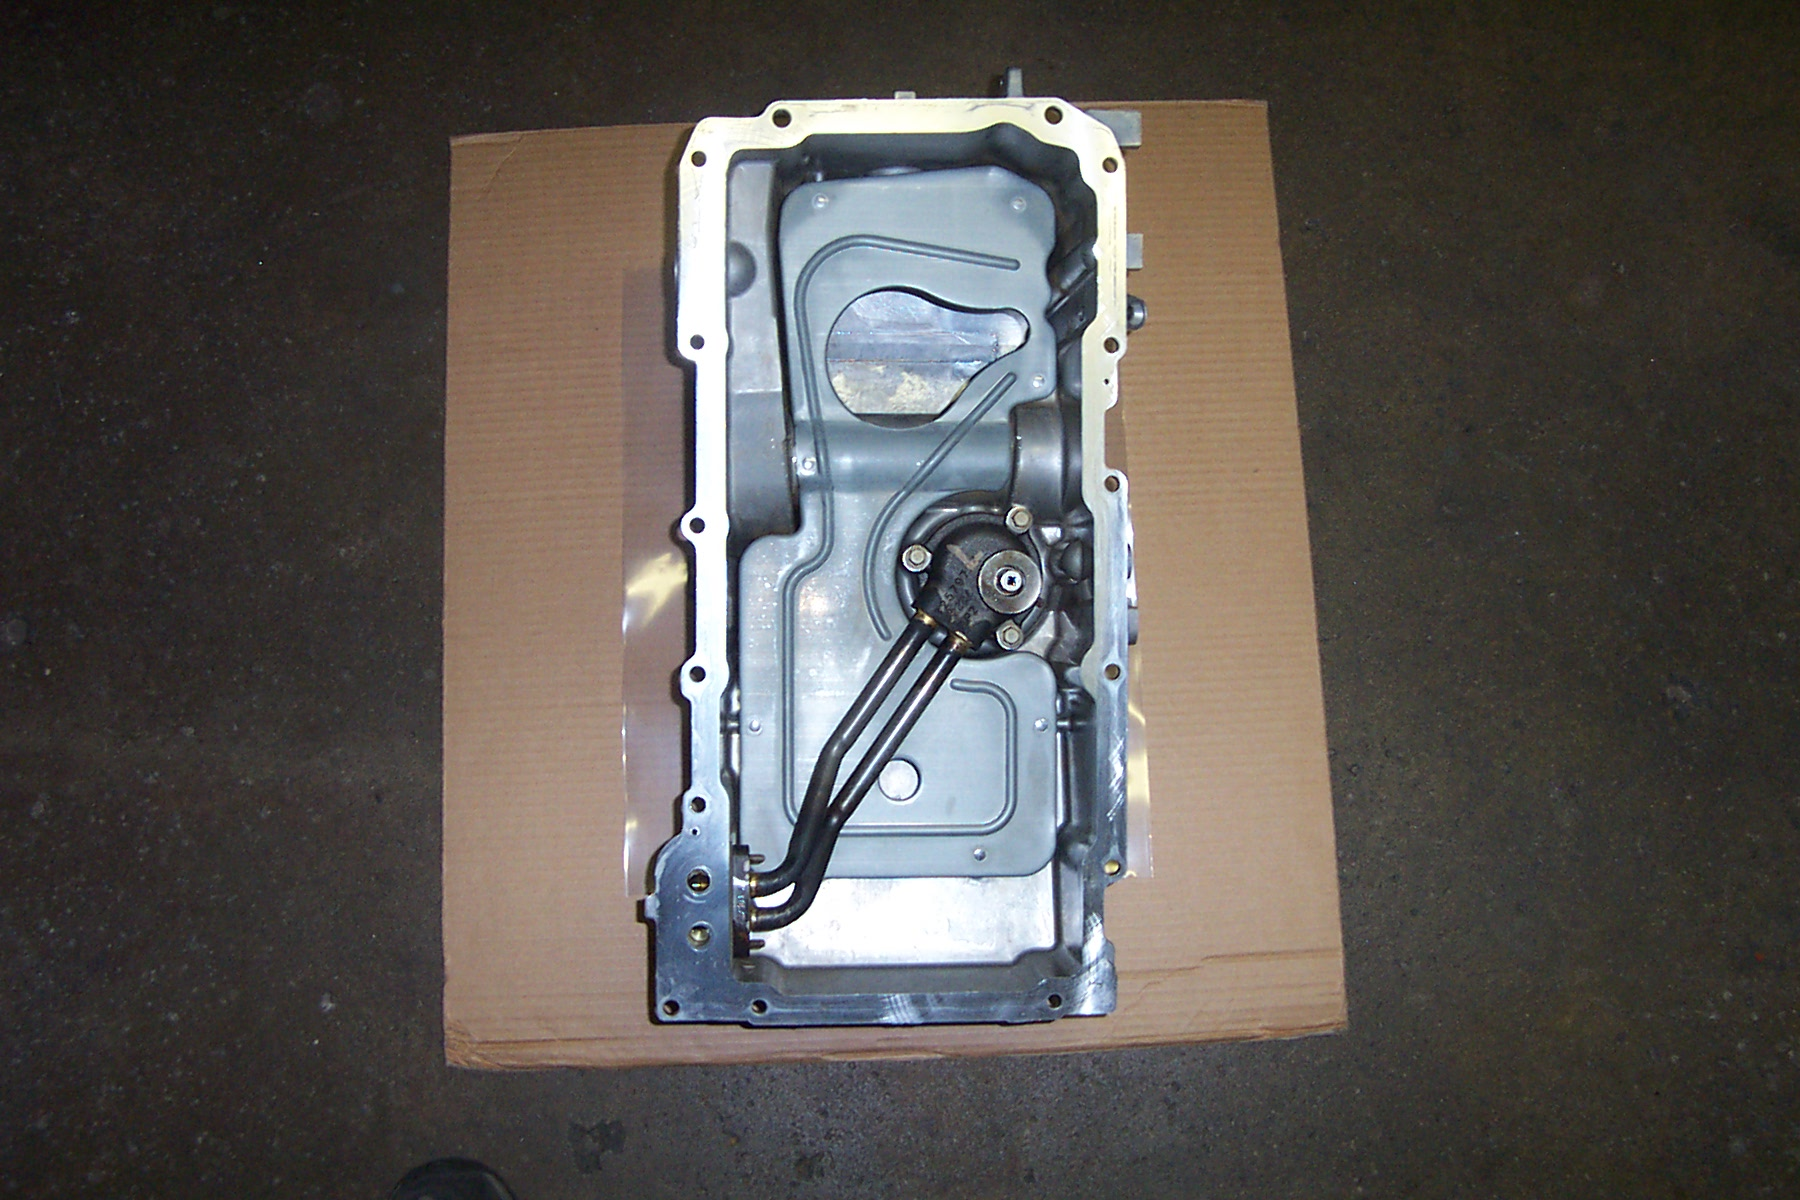 Oil Pan Modifications-dcp_2533.jpg